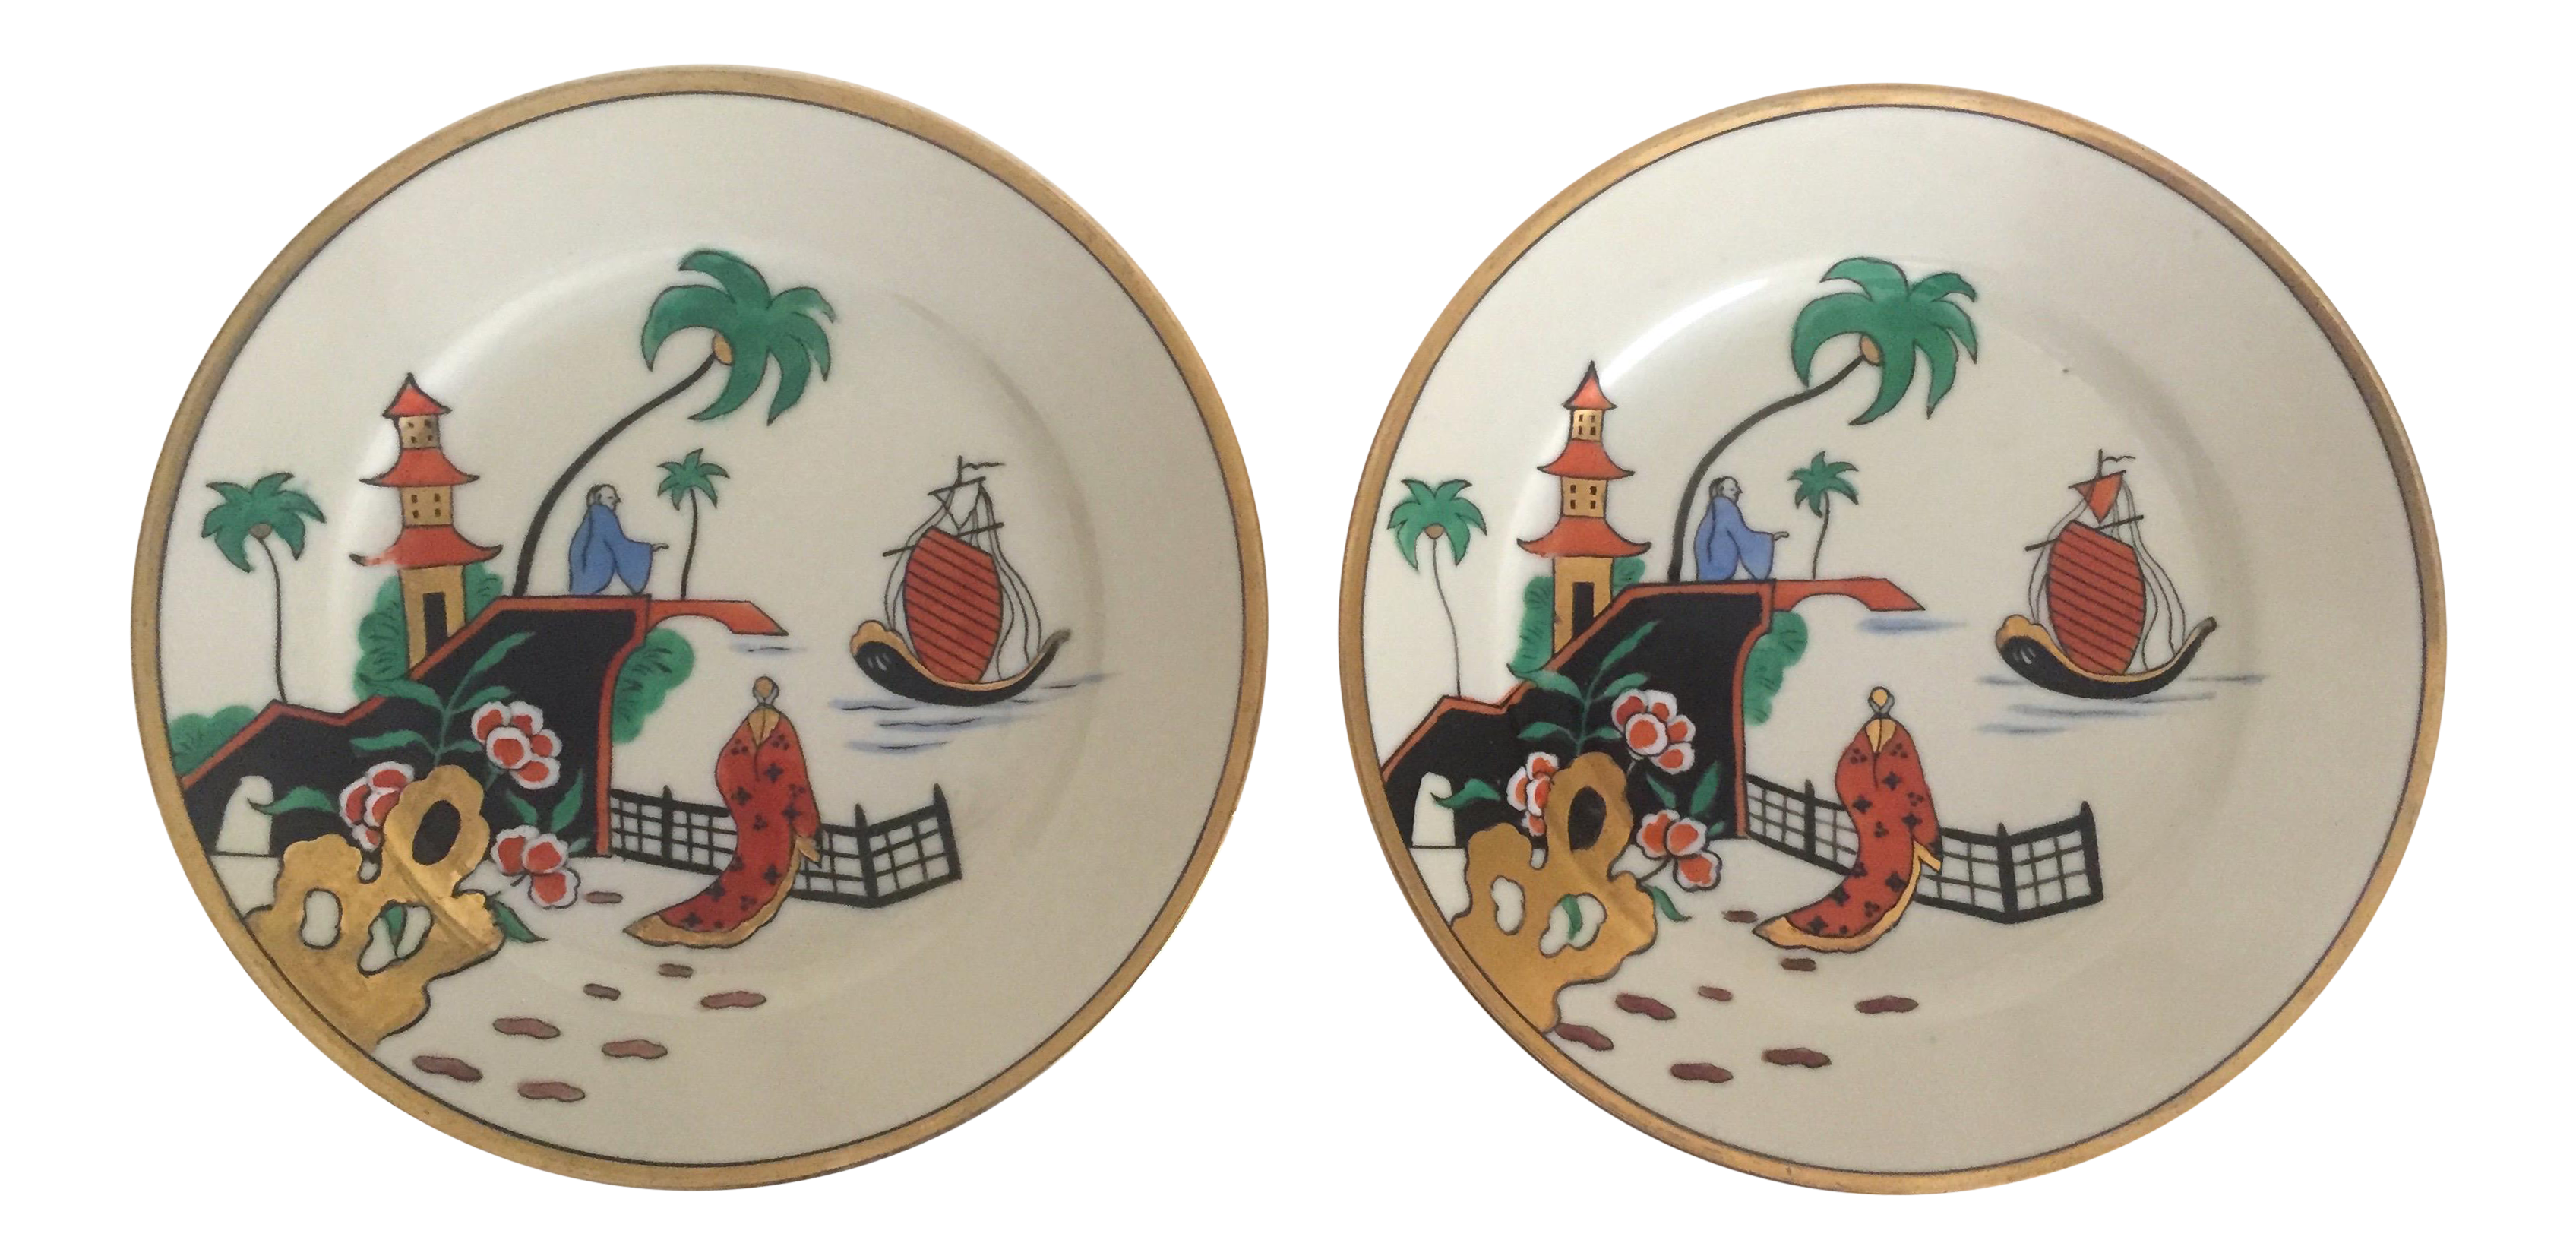 Vintage Noritake Japan Mid Century Modern Hand Painted Decorative Plates - a Pair - Image 1  sc 1 st  Chairish & Vintage Noritake Japan Mid Century Modern Hand Painted Decorative ...